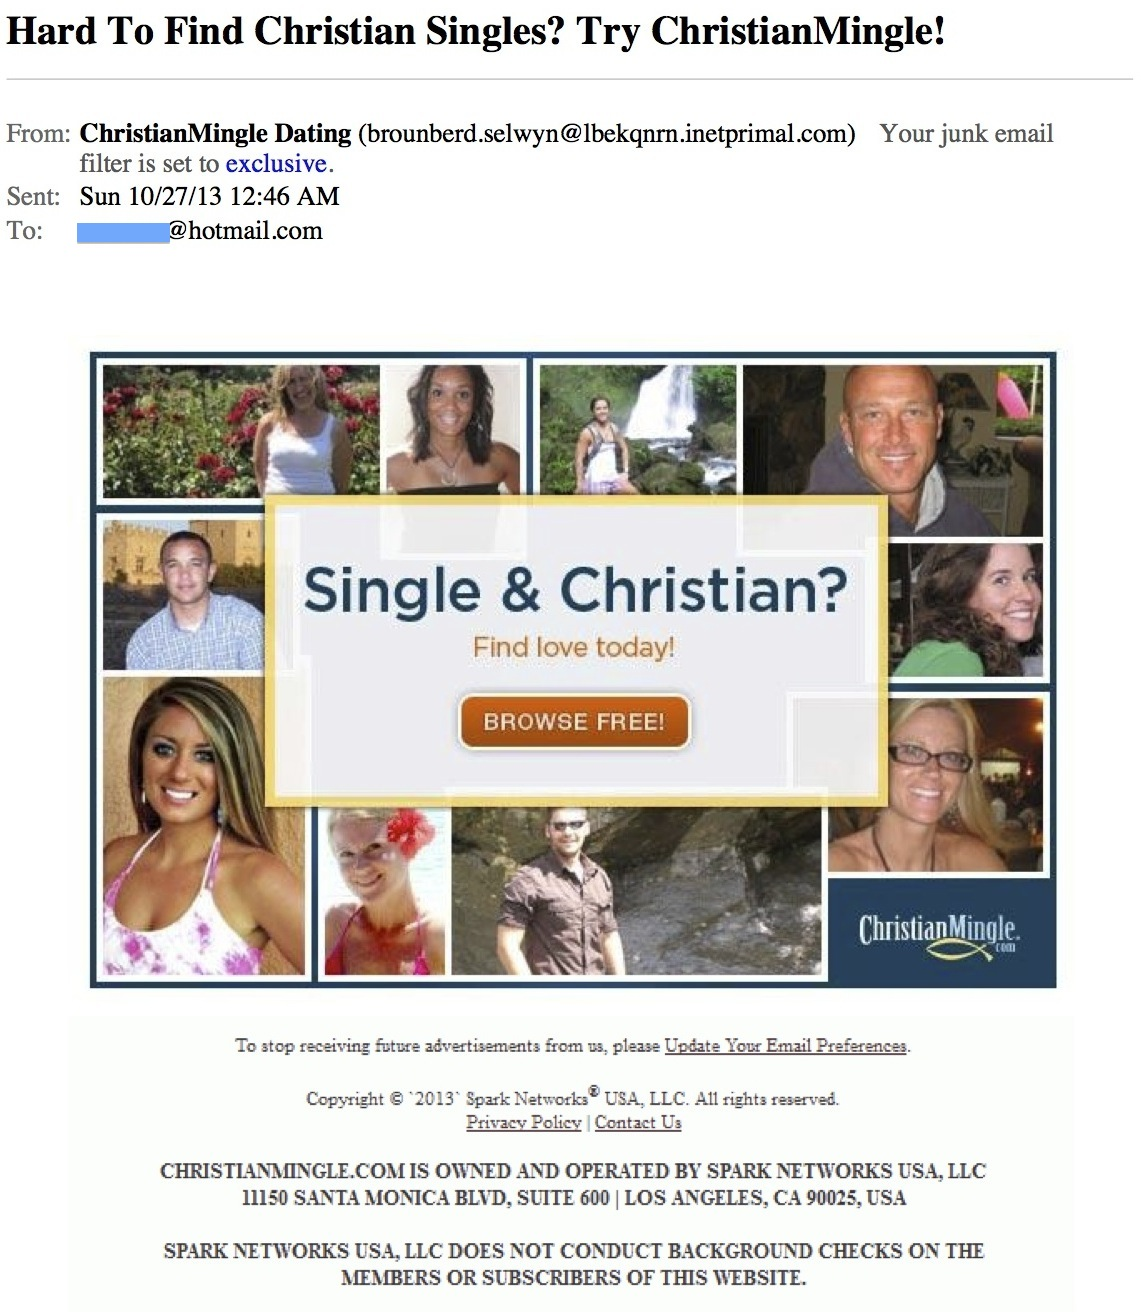 mickleton christian dating site Welcome to the simplest online dating site to date, flirt, or just chat with christian singles it's free to register, view photos, and send messages to single christian men and women in your area one of the largest online dating apps for christian singles on facebook with over 25 million connected singles, firstmet makes it fun and easy for .